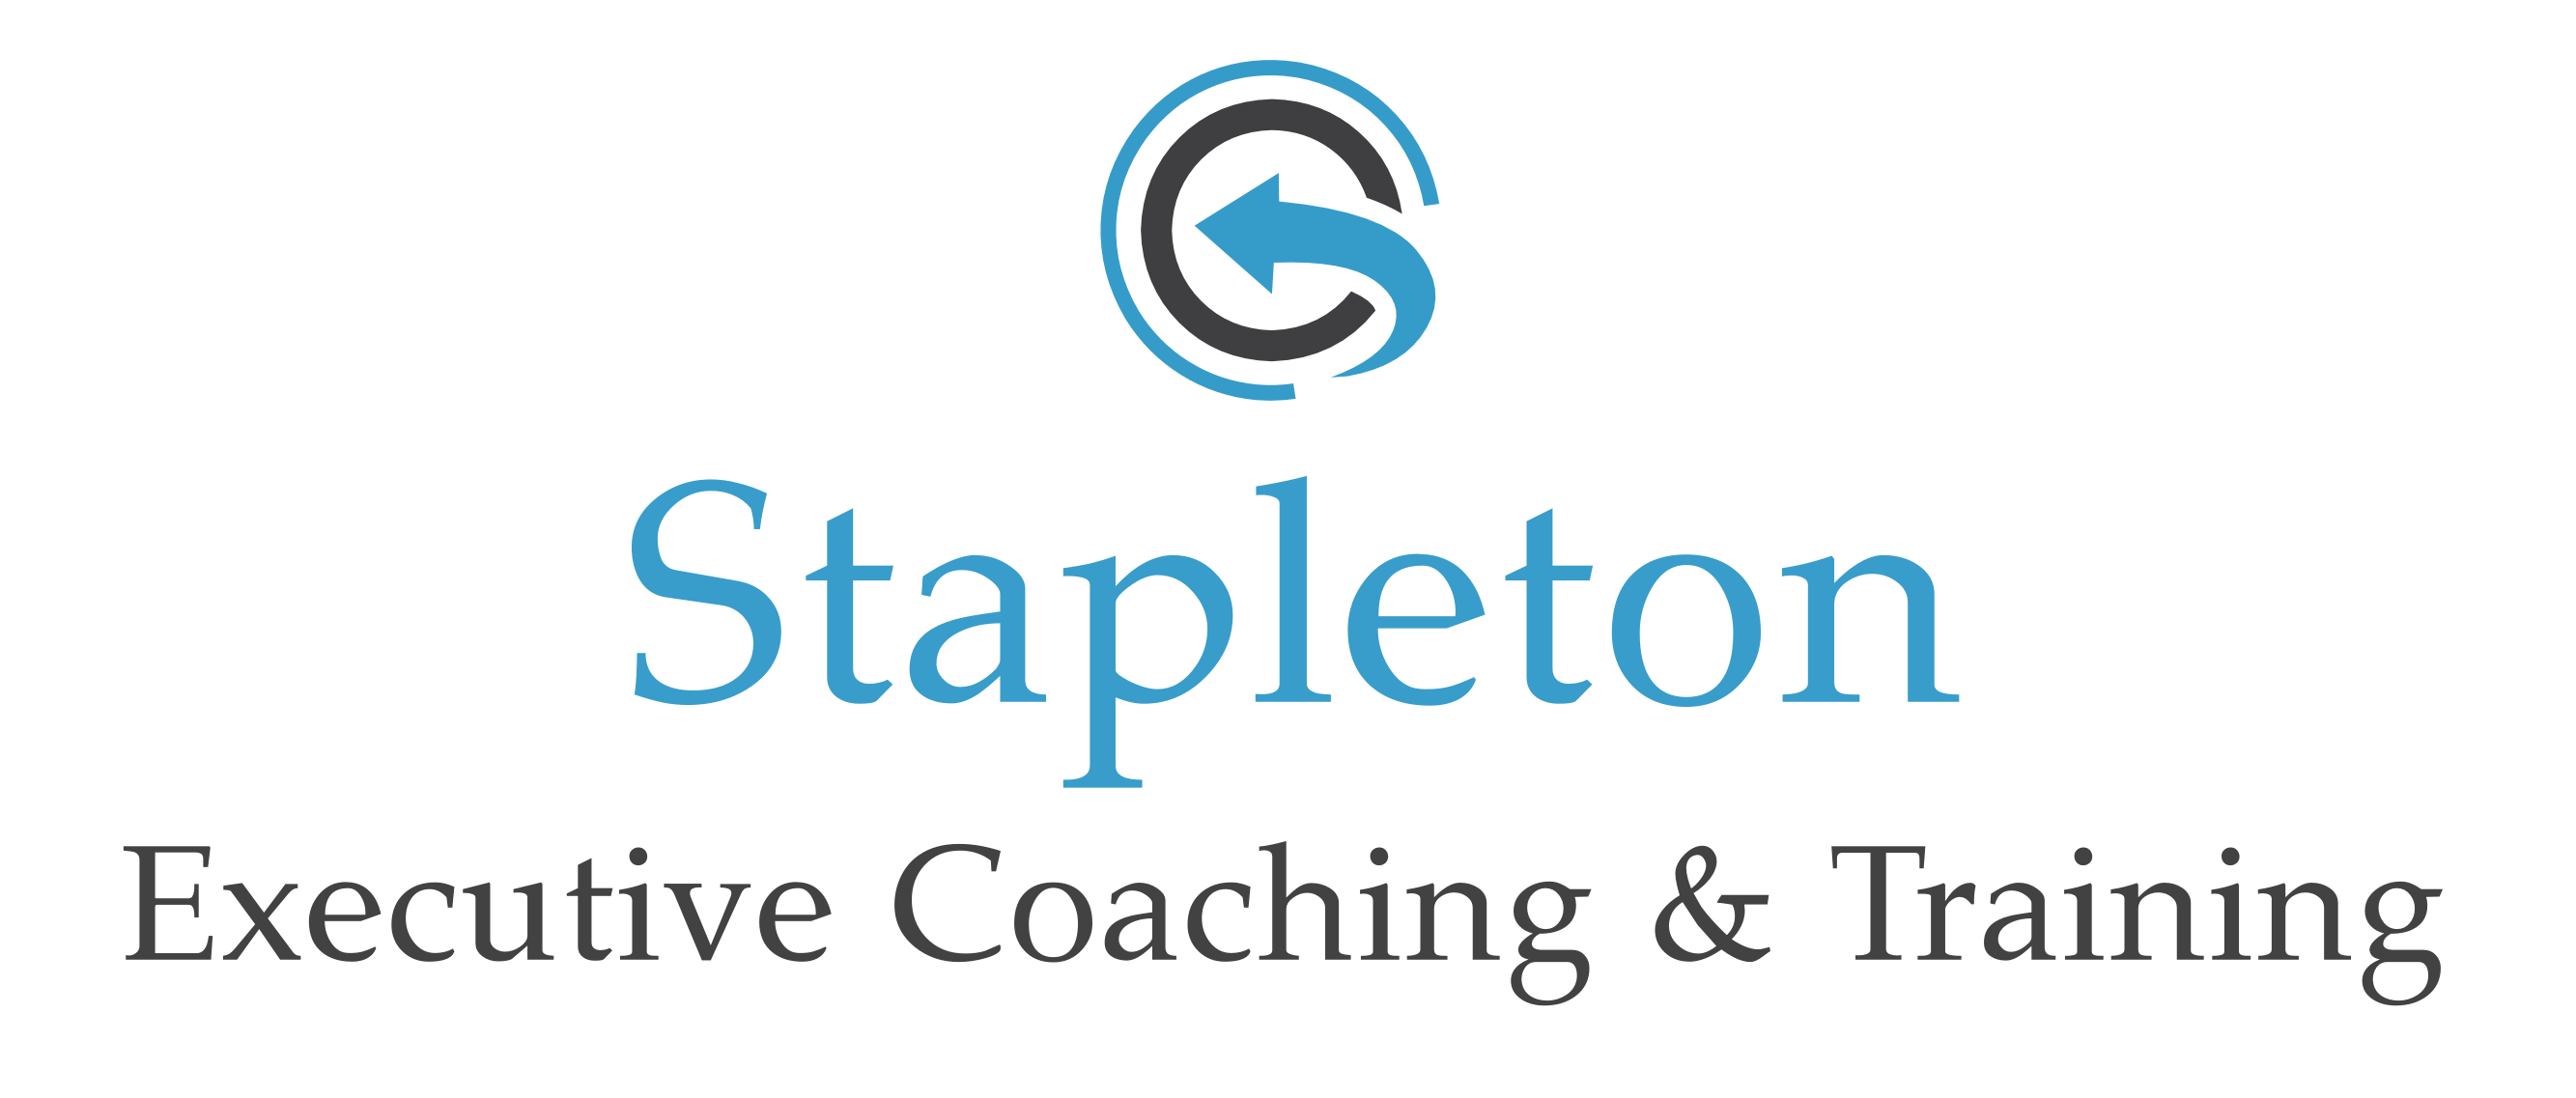 Stapleton Coaching